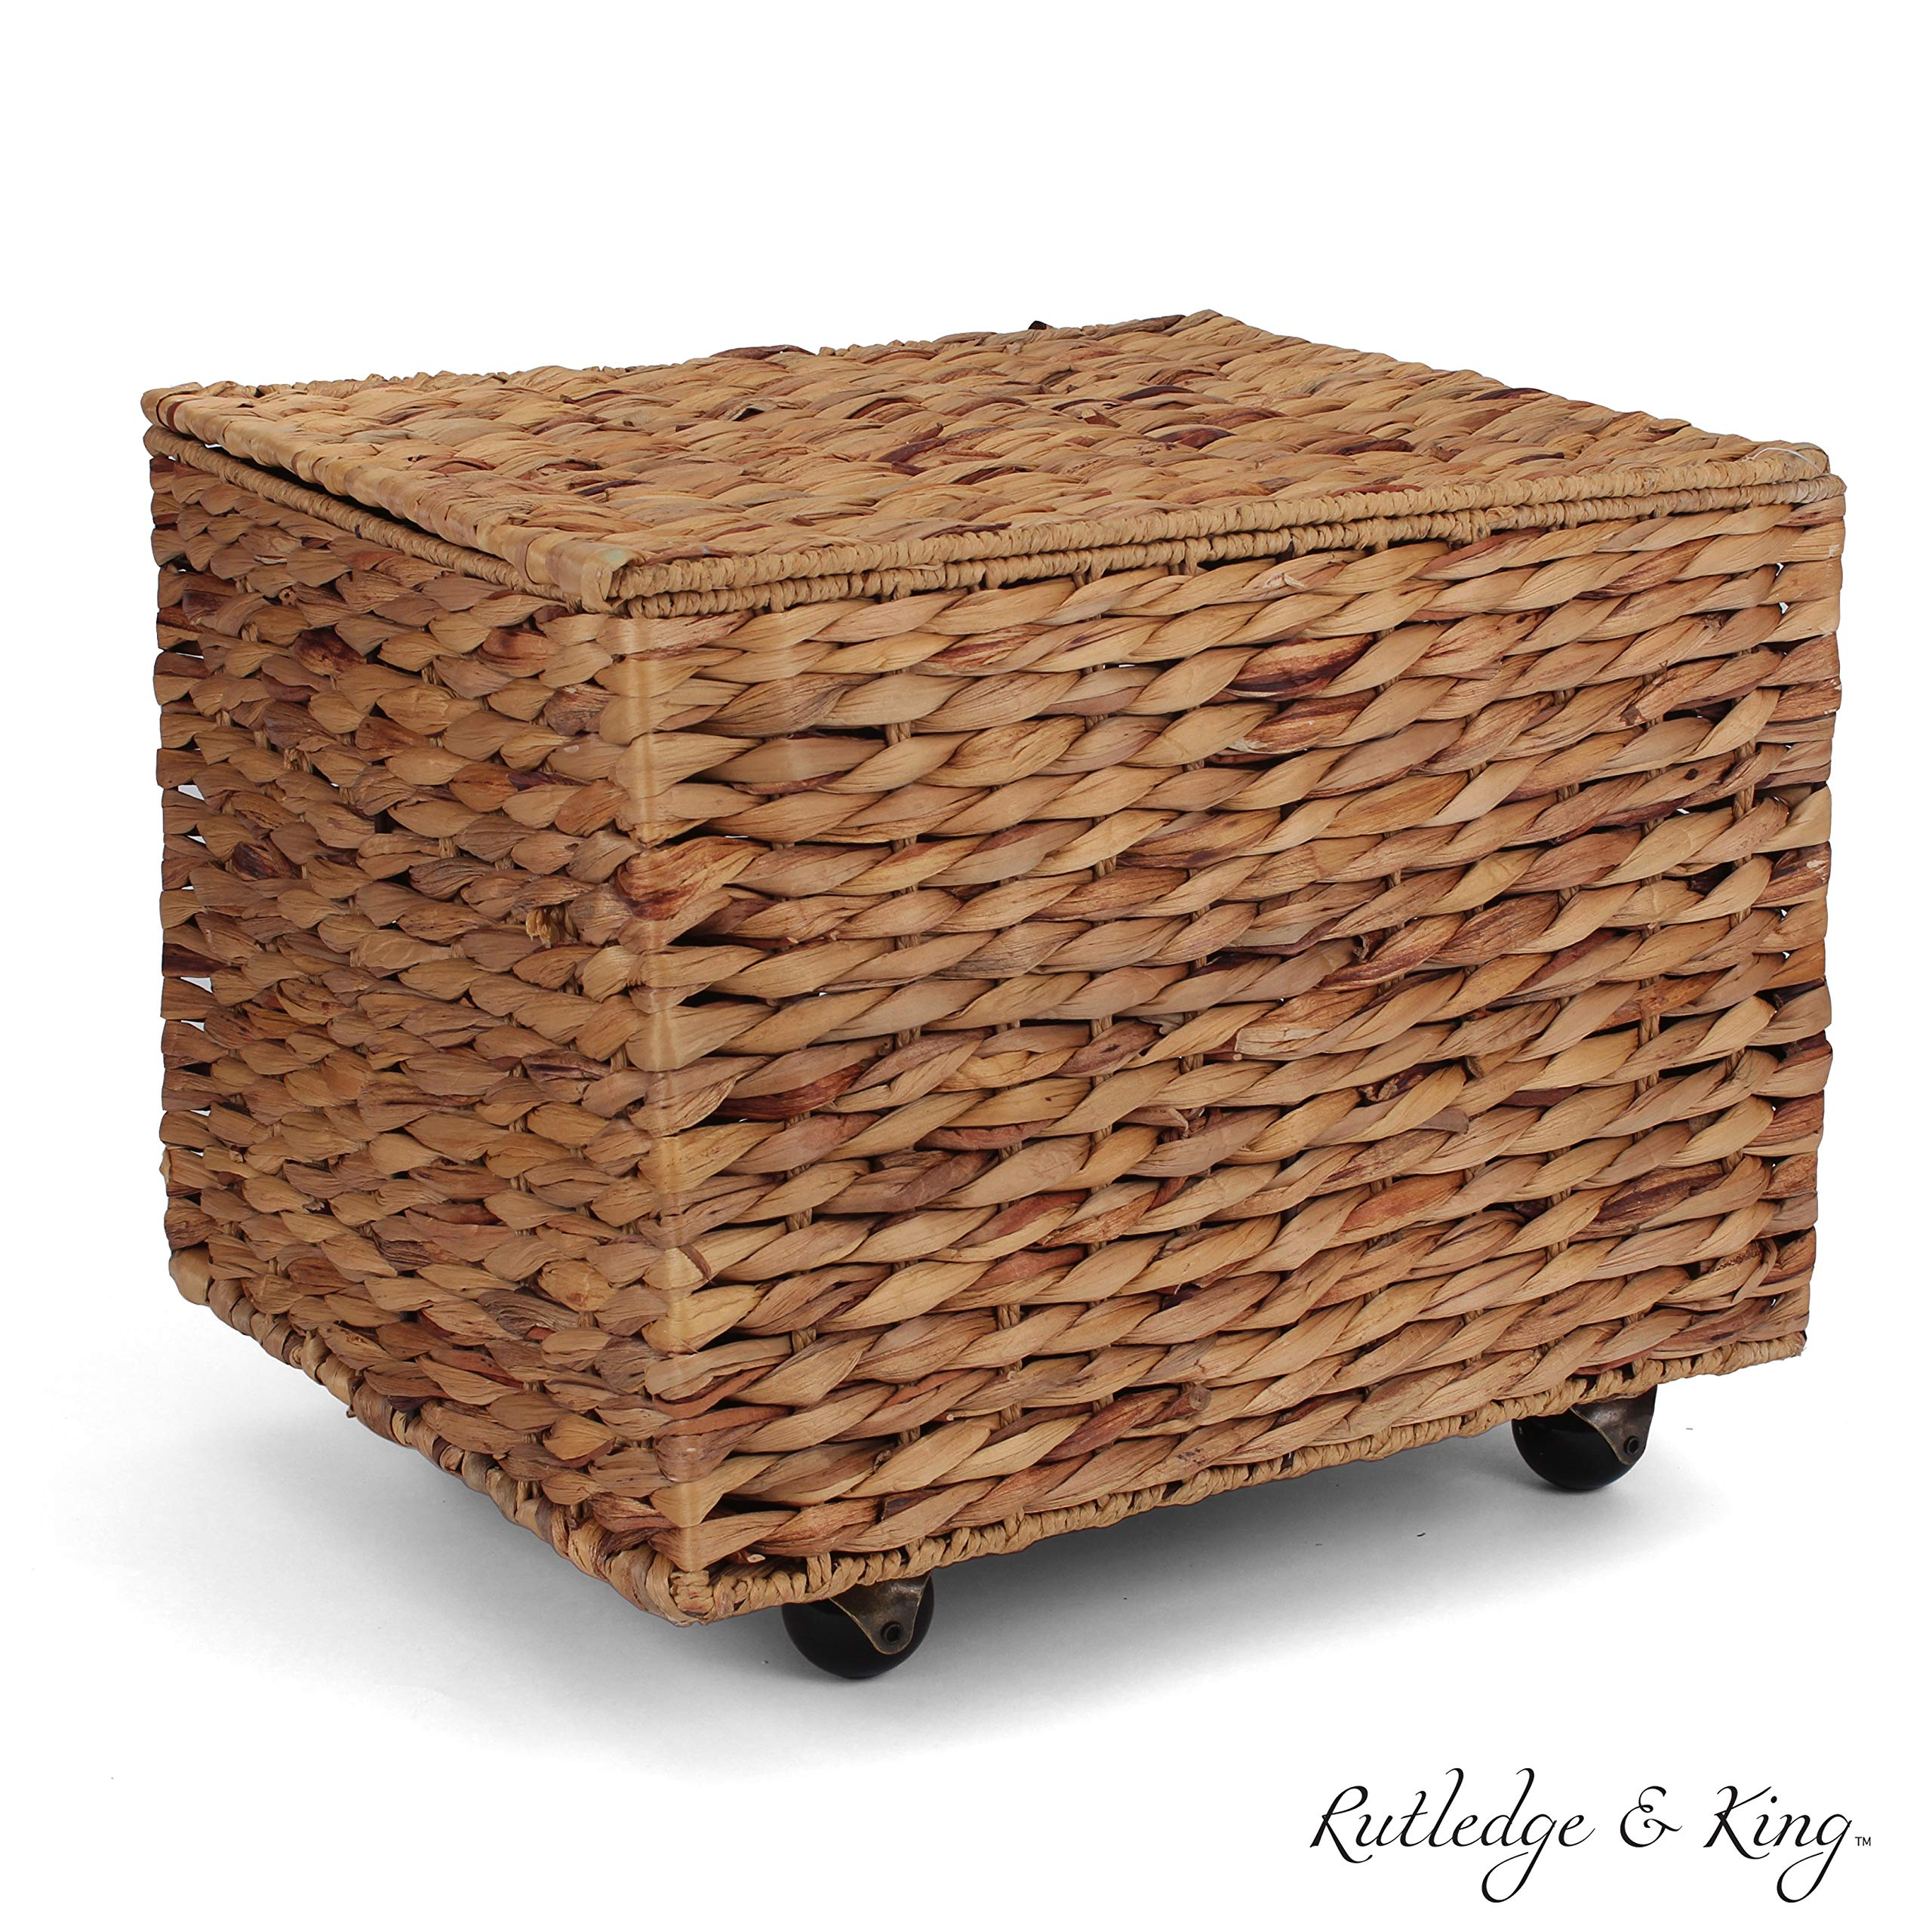 Seagrass Rolling File Cabinet - Home Filing Cabinet - Hanging File Organizer - Home and Office Wicker File Cabinet - Water Hyacinth Storage Basket for File Storage (Natural) by Rutledge & King